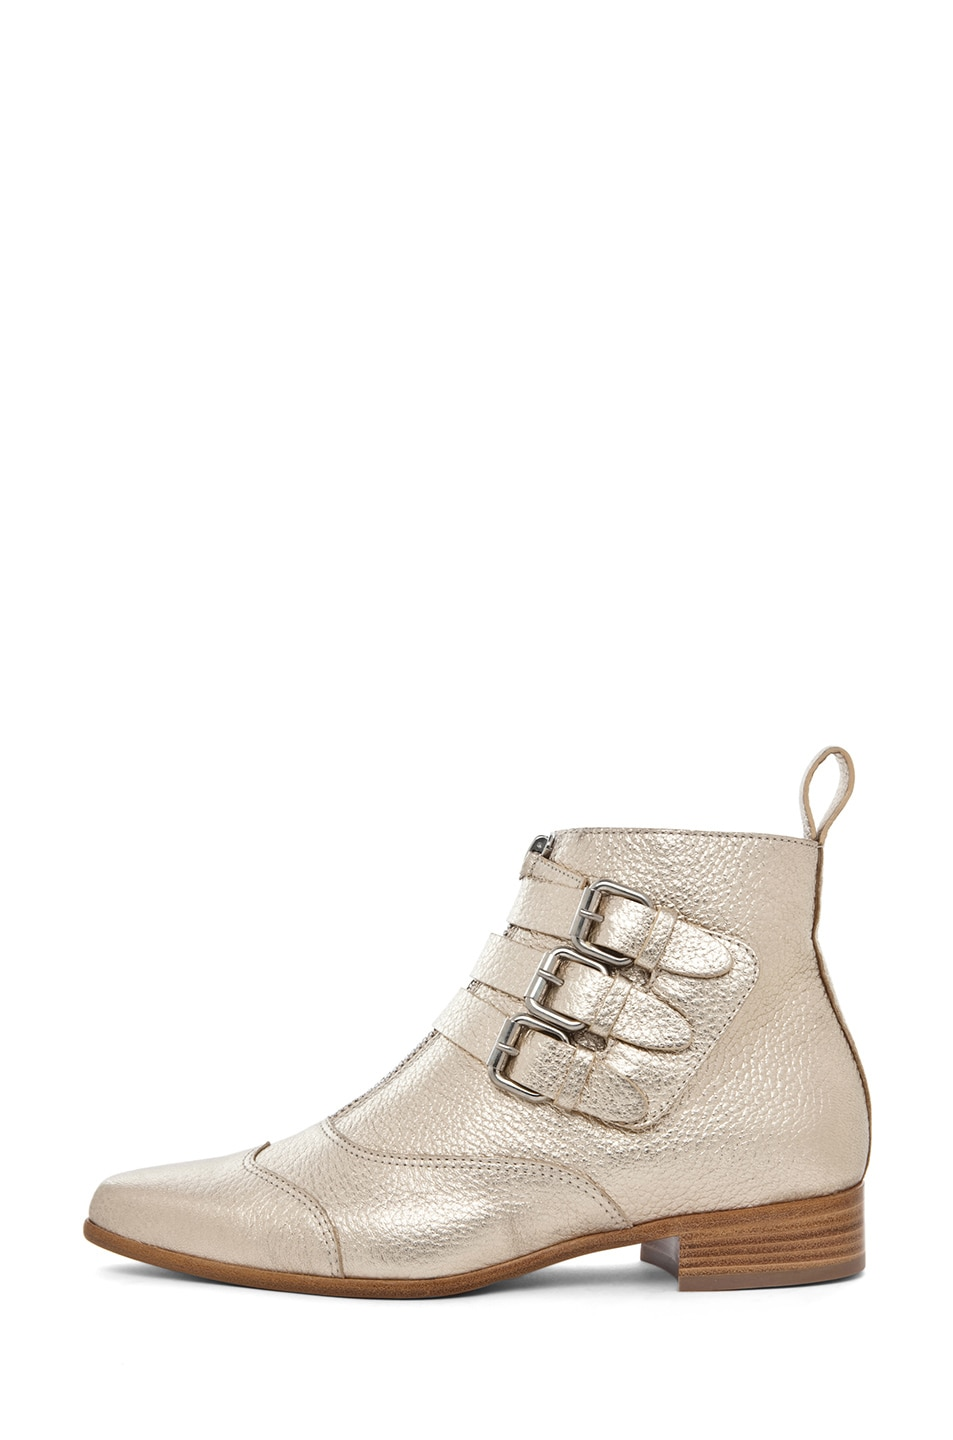 Image 1 of Tabitha Simmons Early Pebbled Leather Booties in Gold